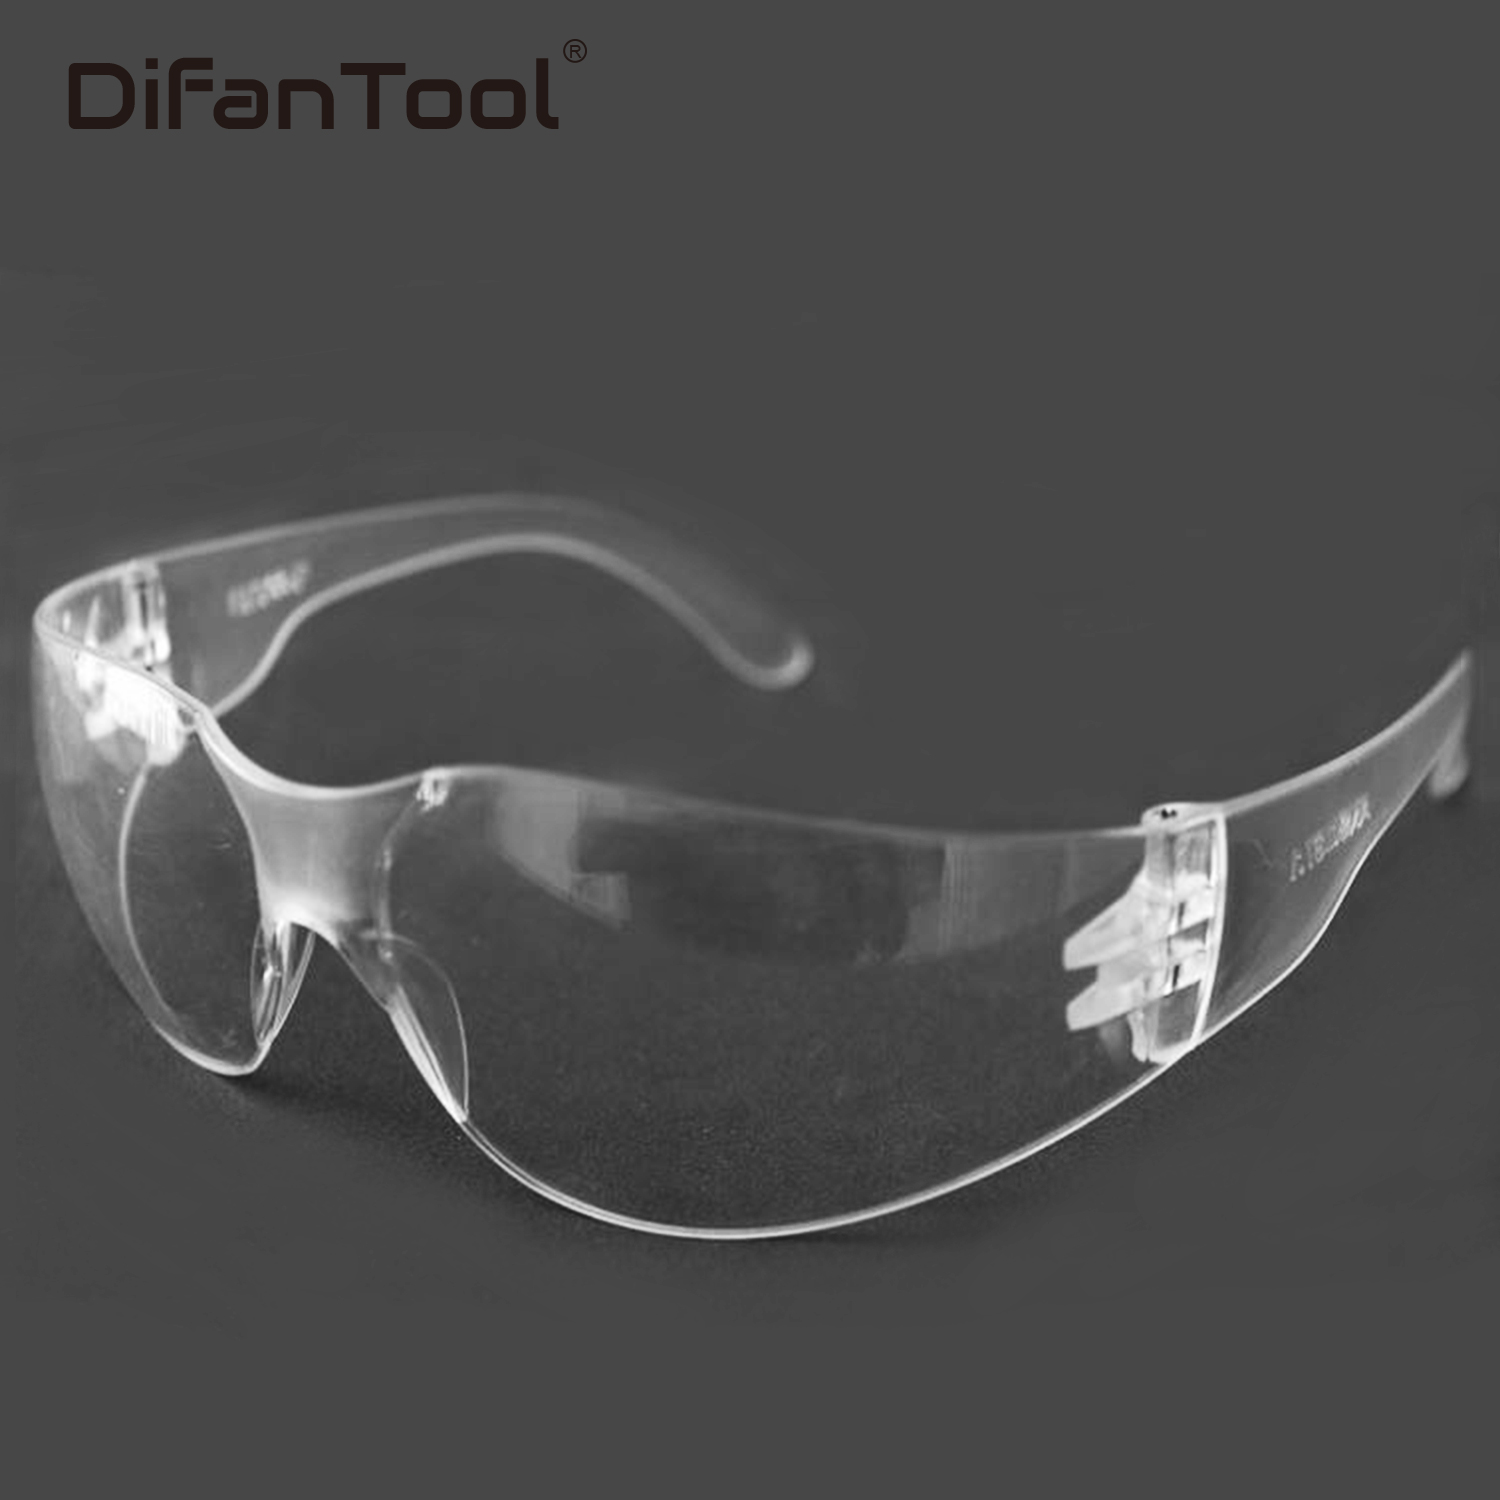 Difanmax Safety Glasses Lab Eye Protection Protective Eyewear Clear Lens Workplace Goggle